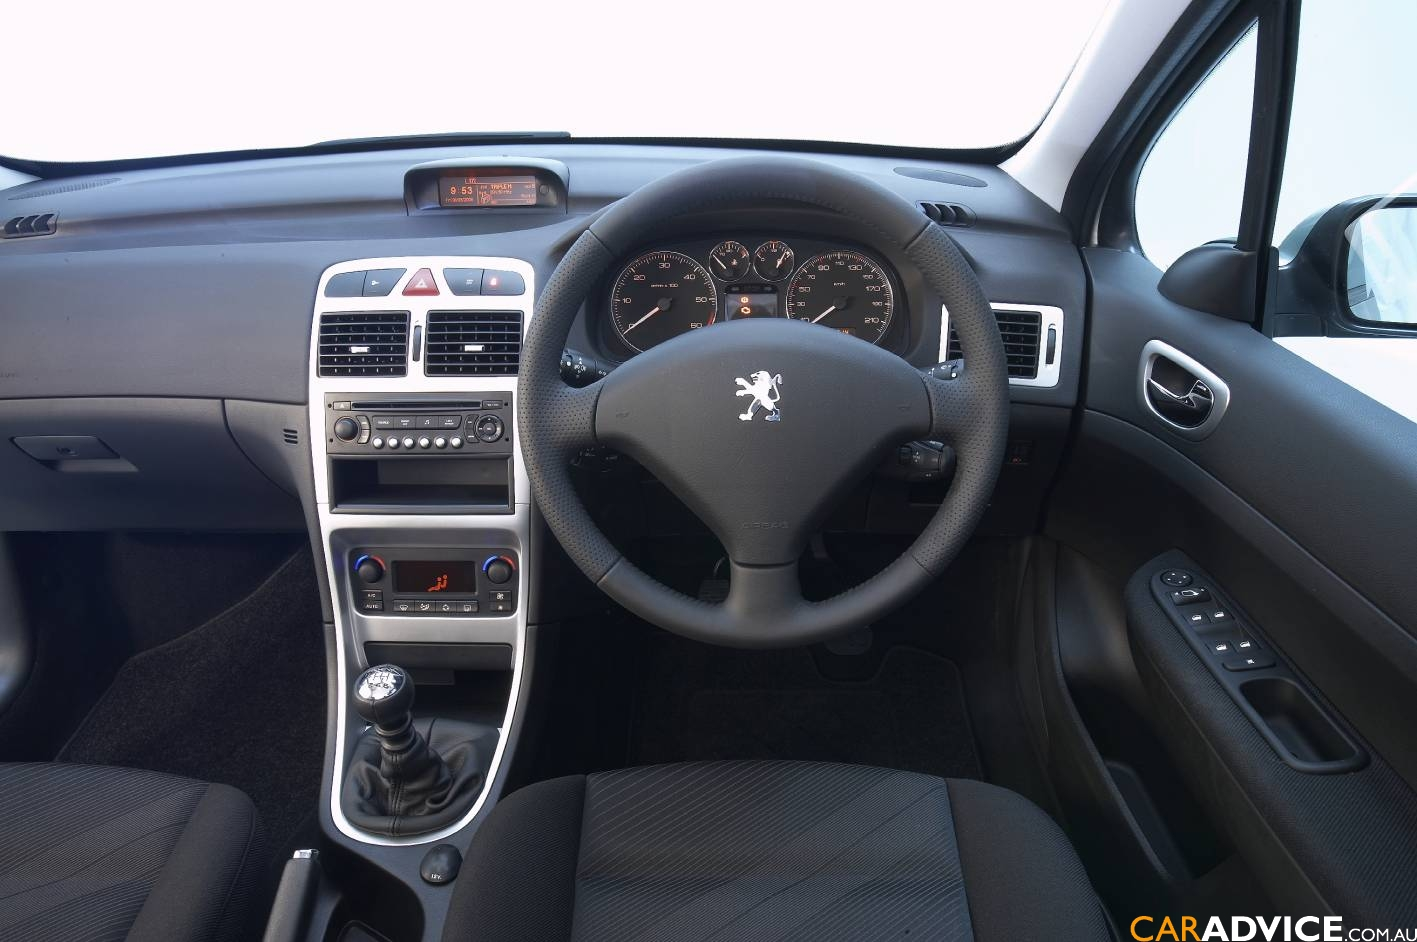 PEUGEOT 307 - Review and photos